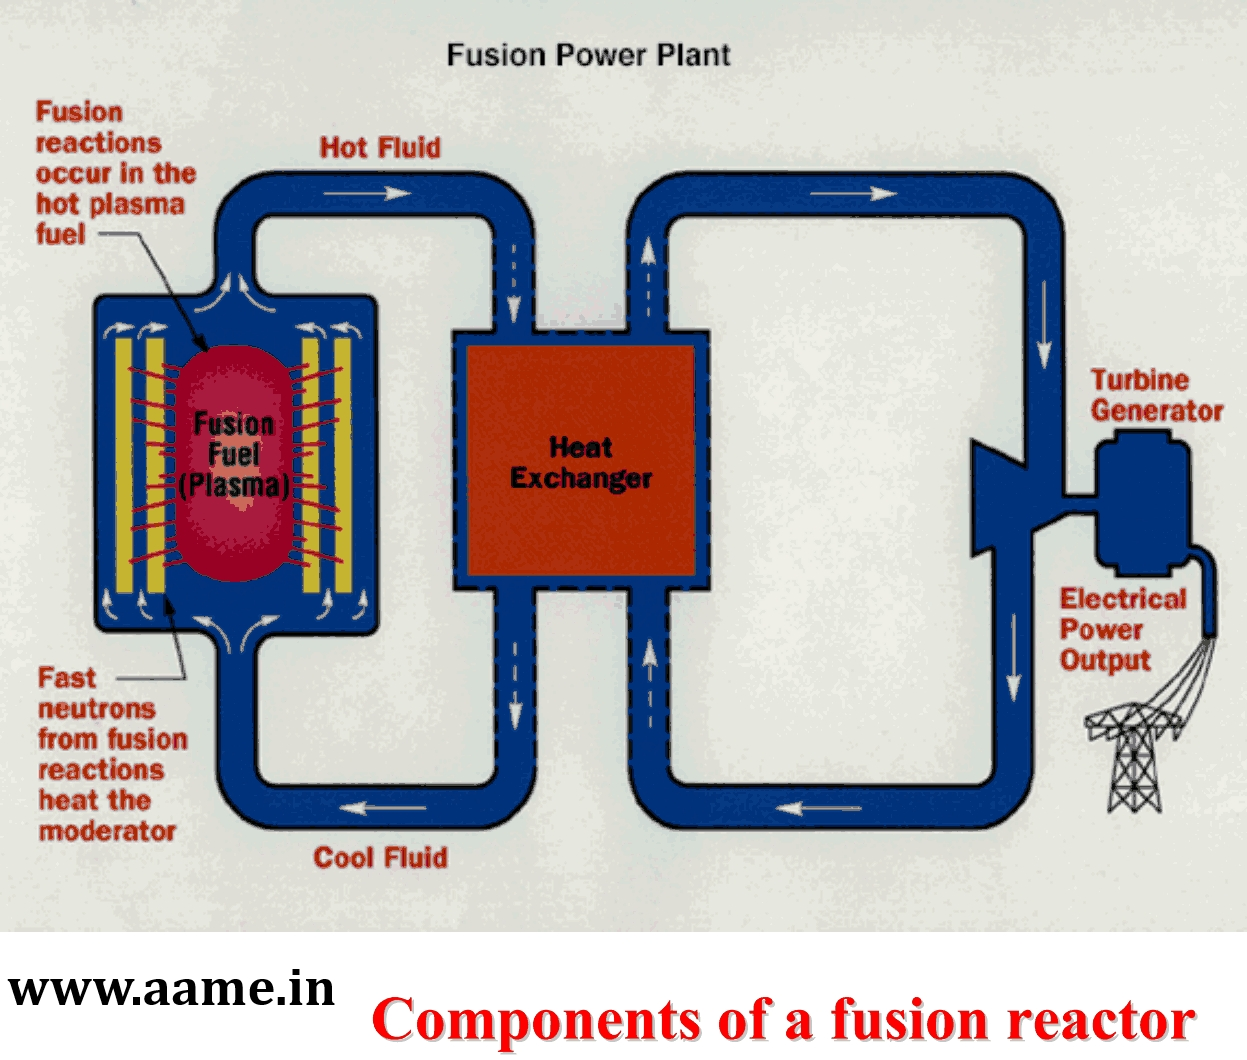 Nuclear Fusion To Meet India's Electricity Requirements